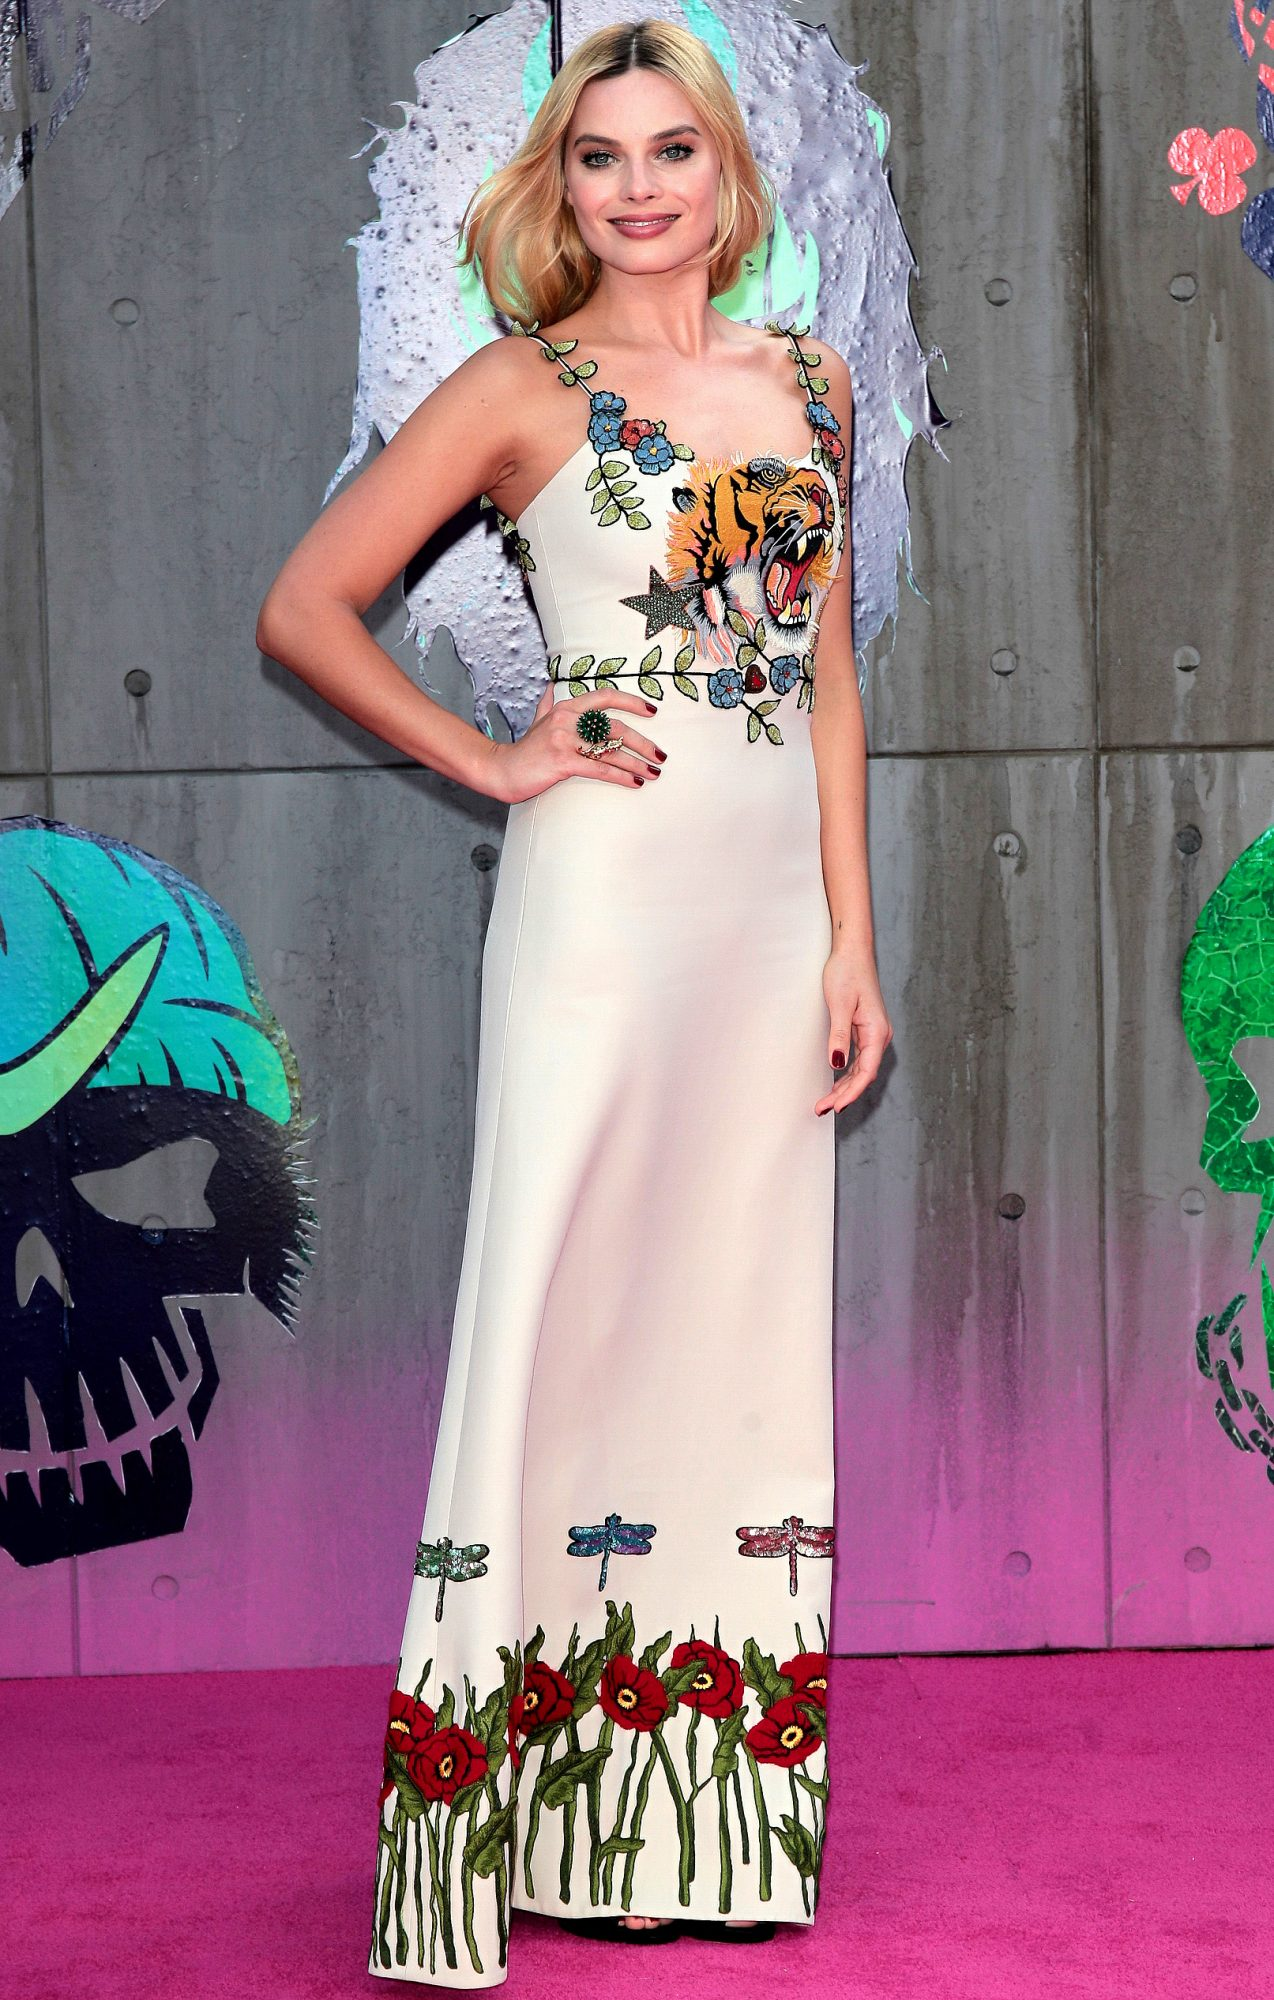 Georgia May Jagger attends the Suicide Squad film premiere in London